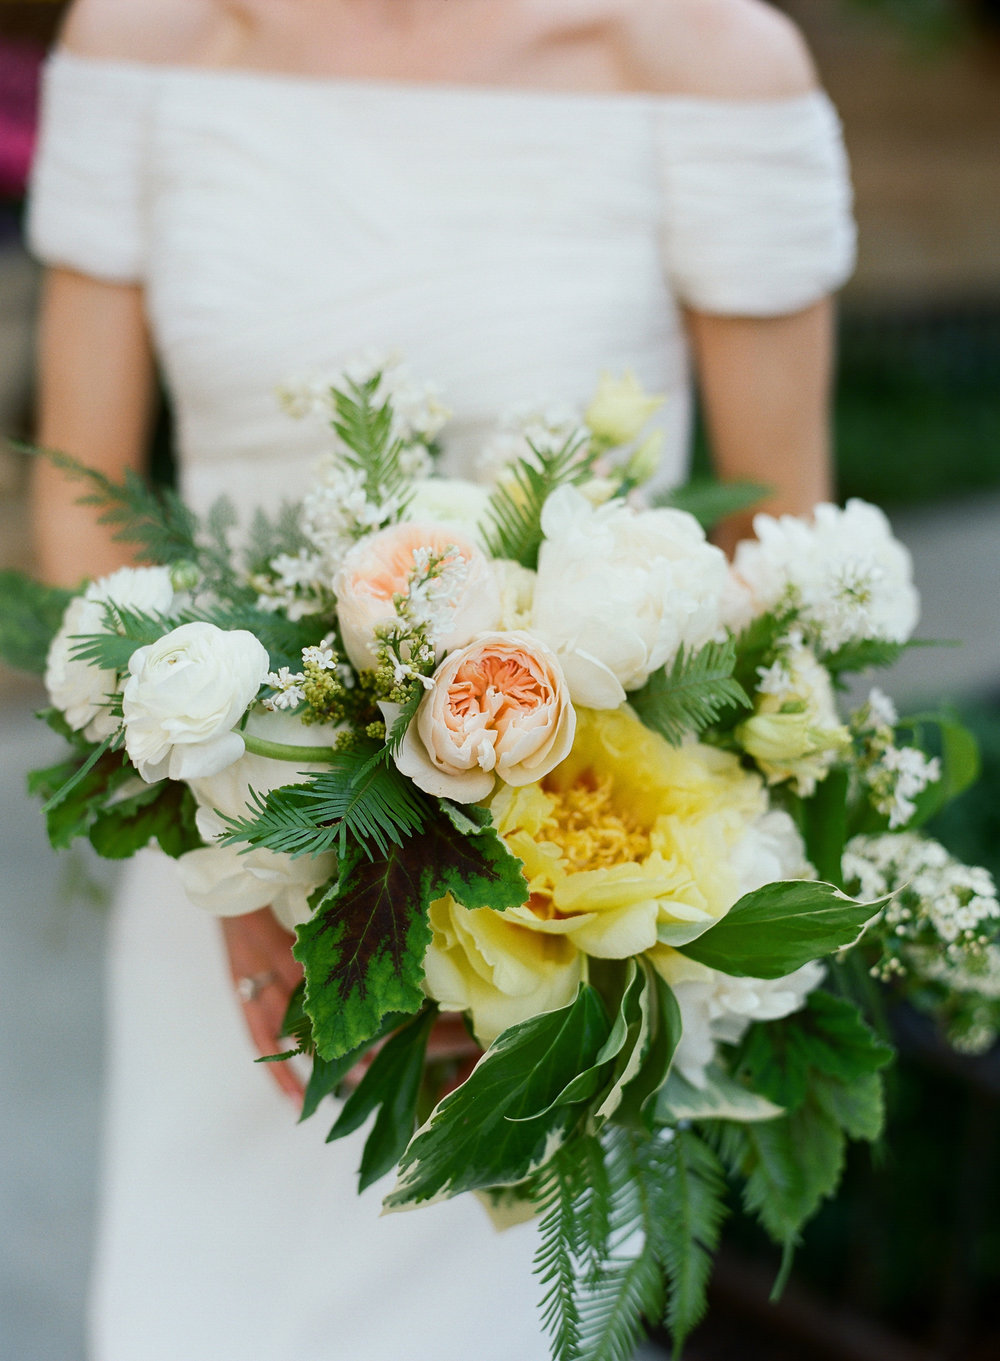 Yellow peony and fern bridal bouquet designed by Fleur Inc.  Wedding at the Chicago History Museum, photographed by Kate Headley.